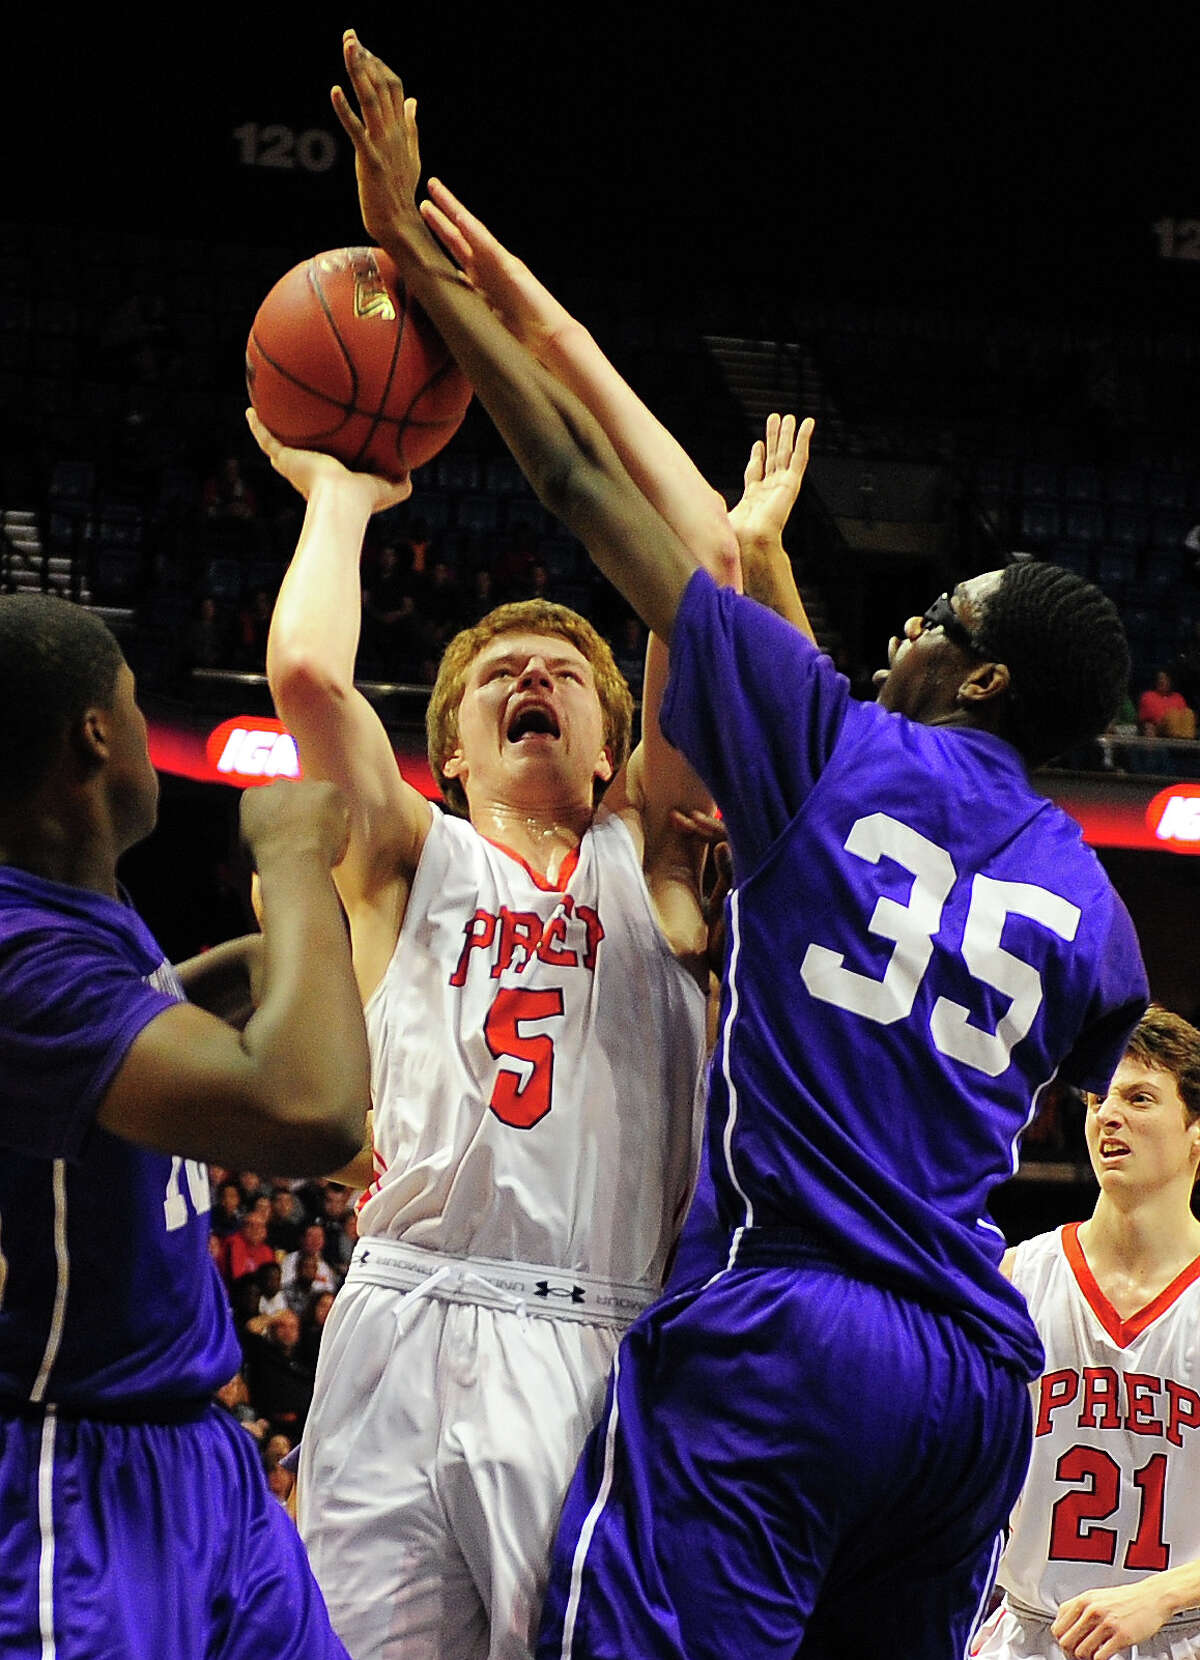 Westhill'sBrendon Thomas, right, blocks Fairfield Prep's Thomas Nolan as he attempts a shot, during CIAC State Boys Basketball Tournament action at Mohegan Sun in Uncasville, Conn., on Saturday Mar. 21, 2015.